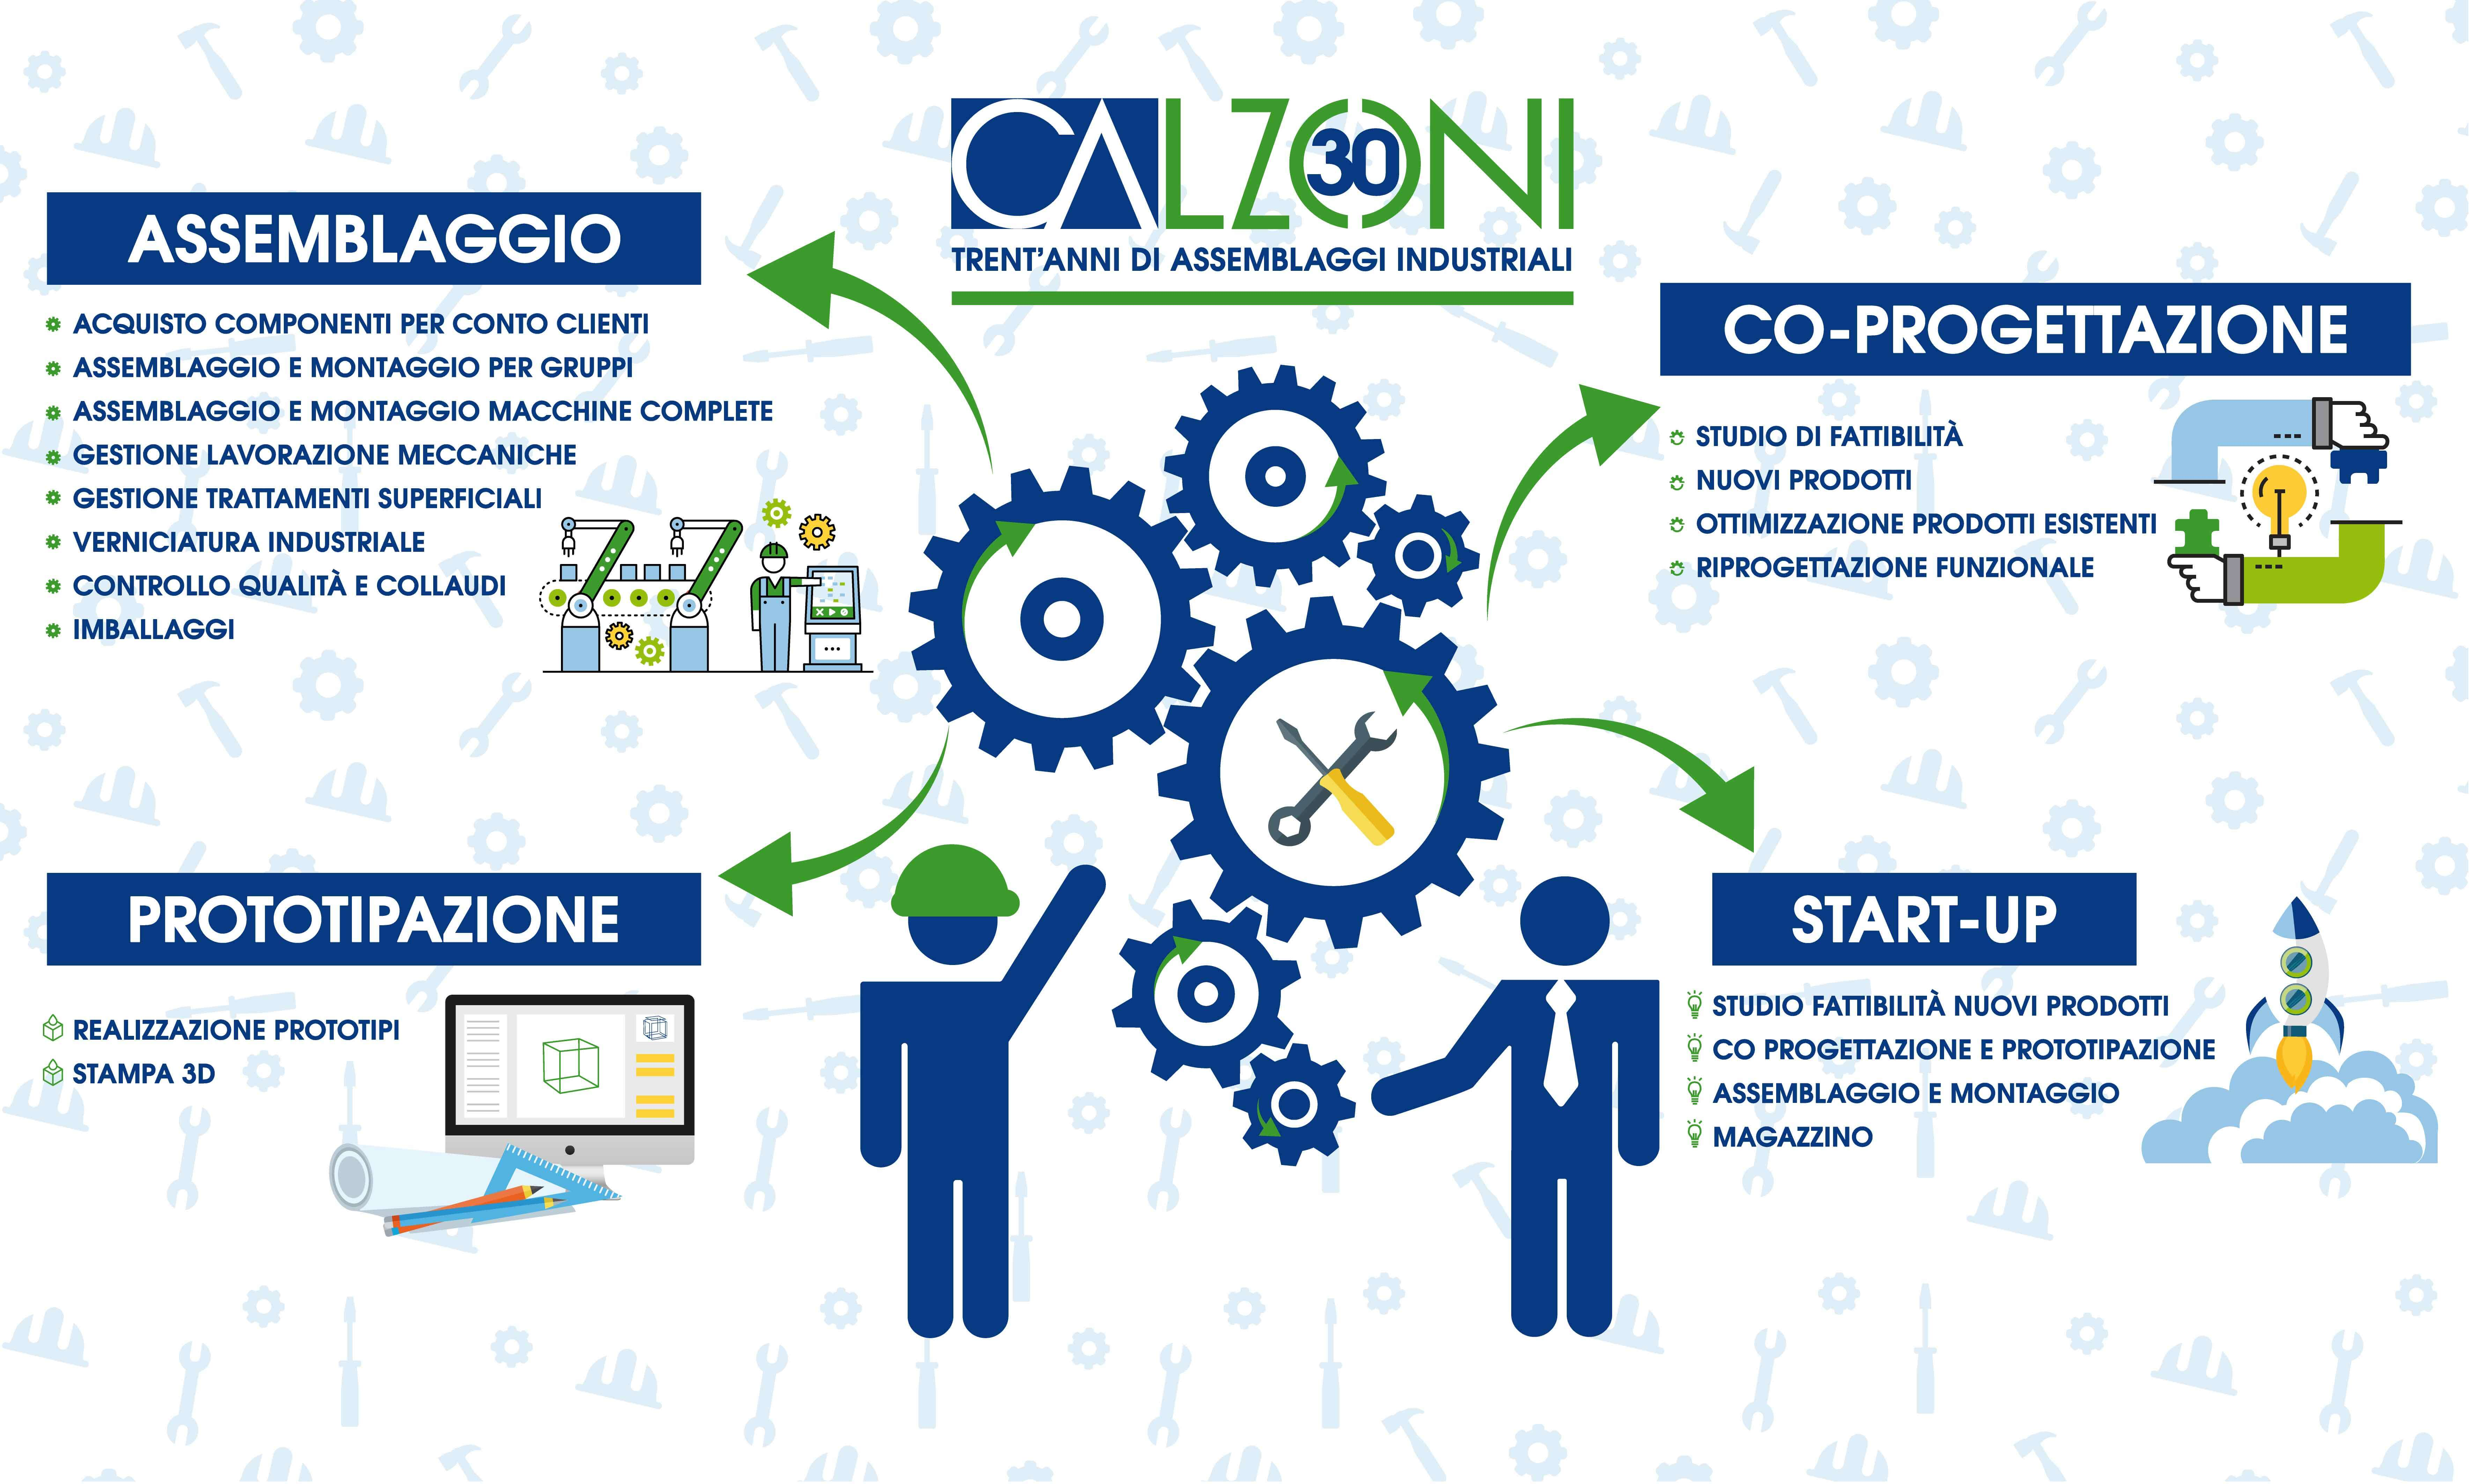 Infographic of Calzoni's services